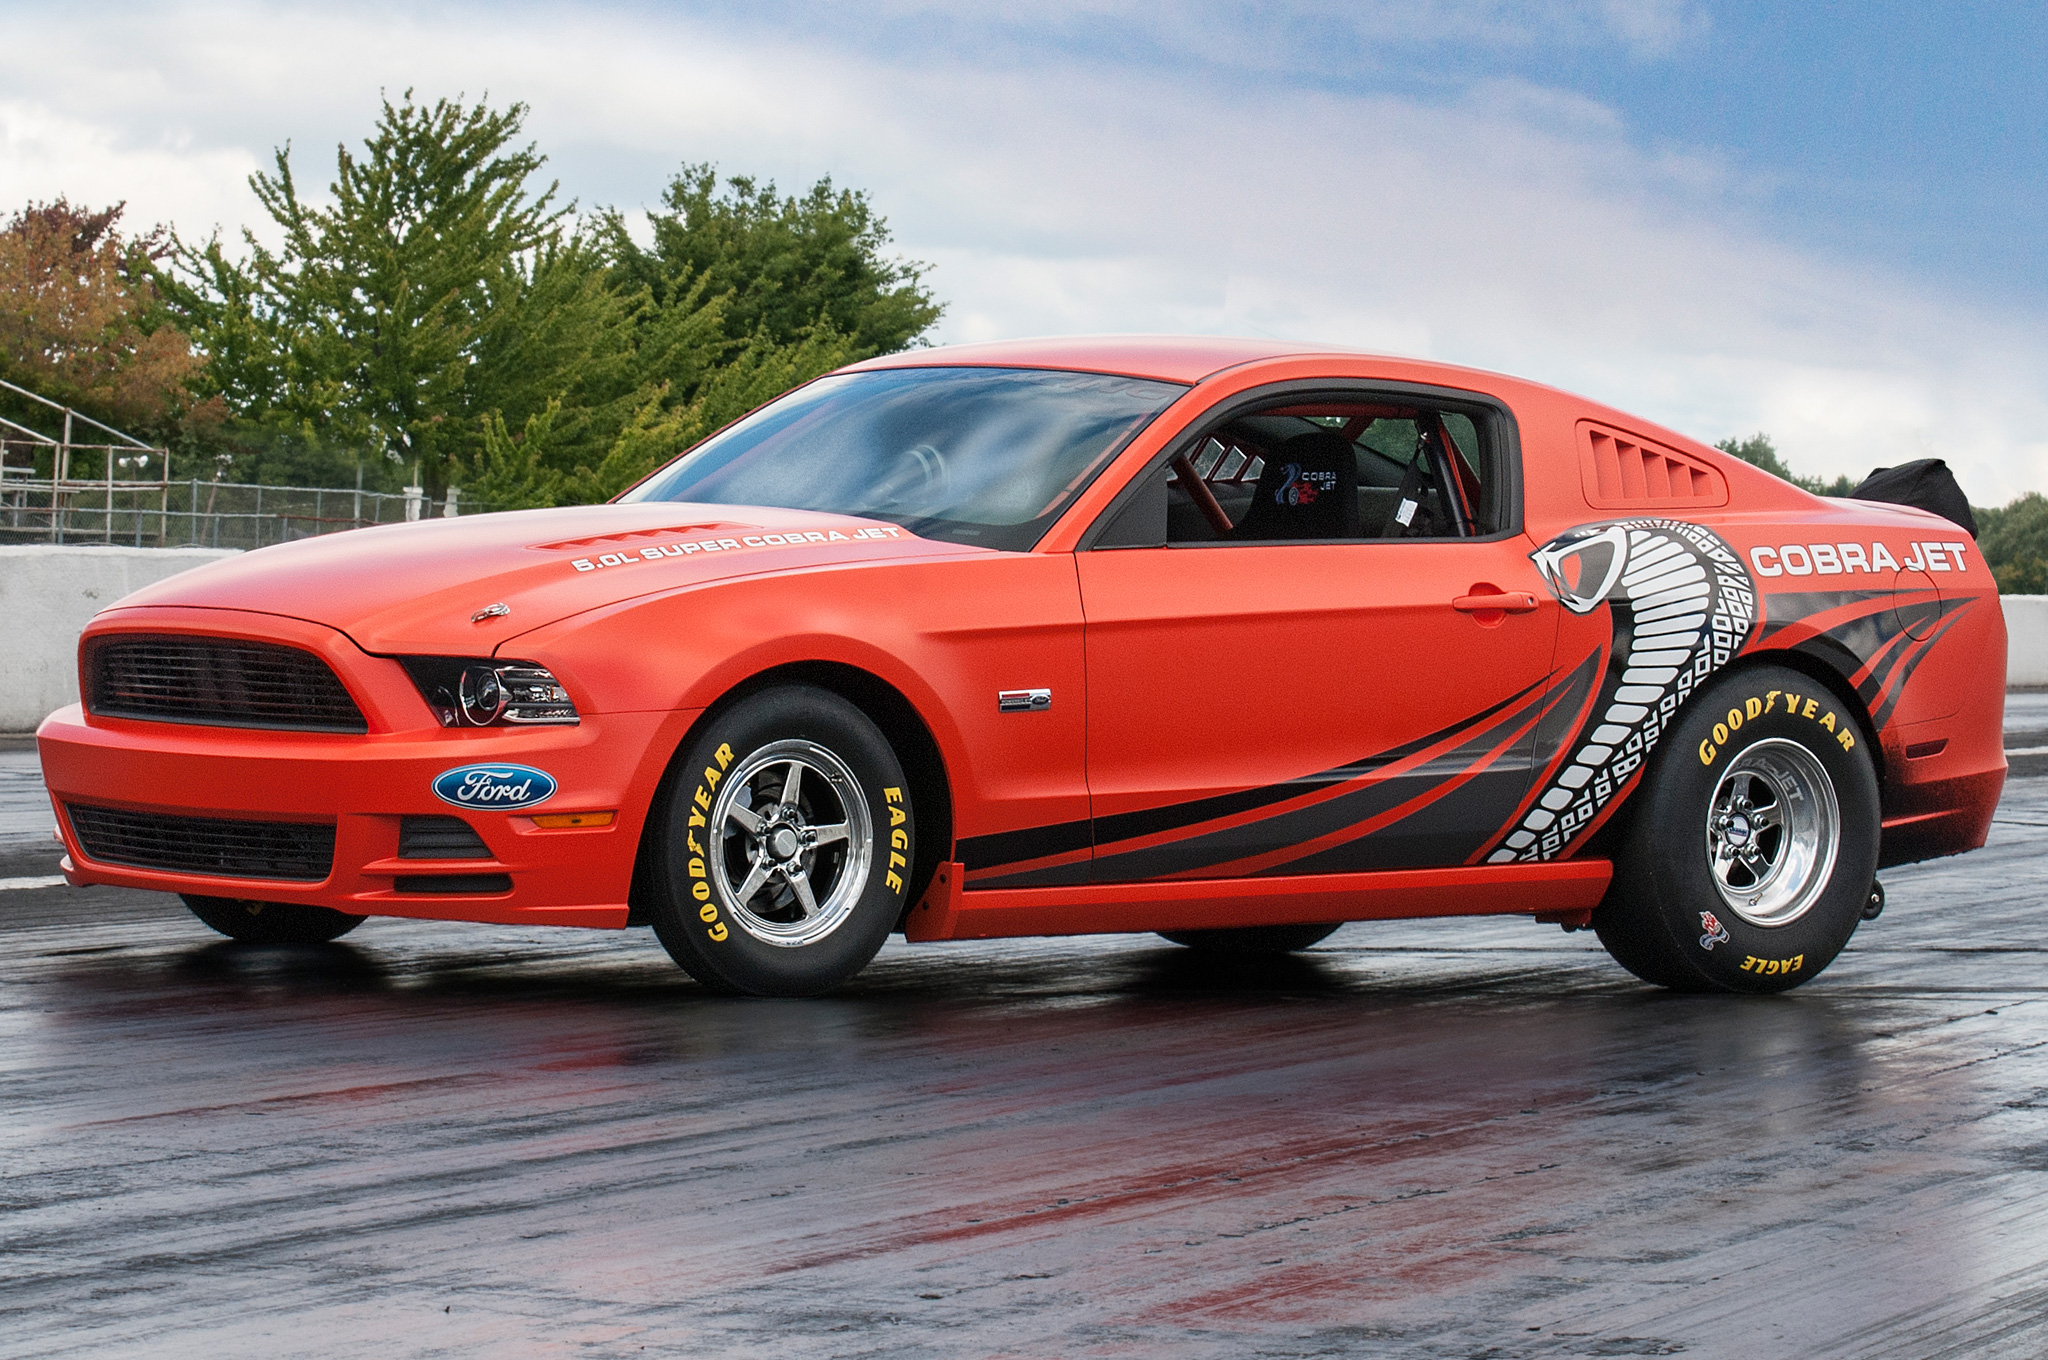 We Hear Ford Prepping 2015 Cobra Jet May Not Be Mustang Based